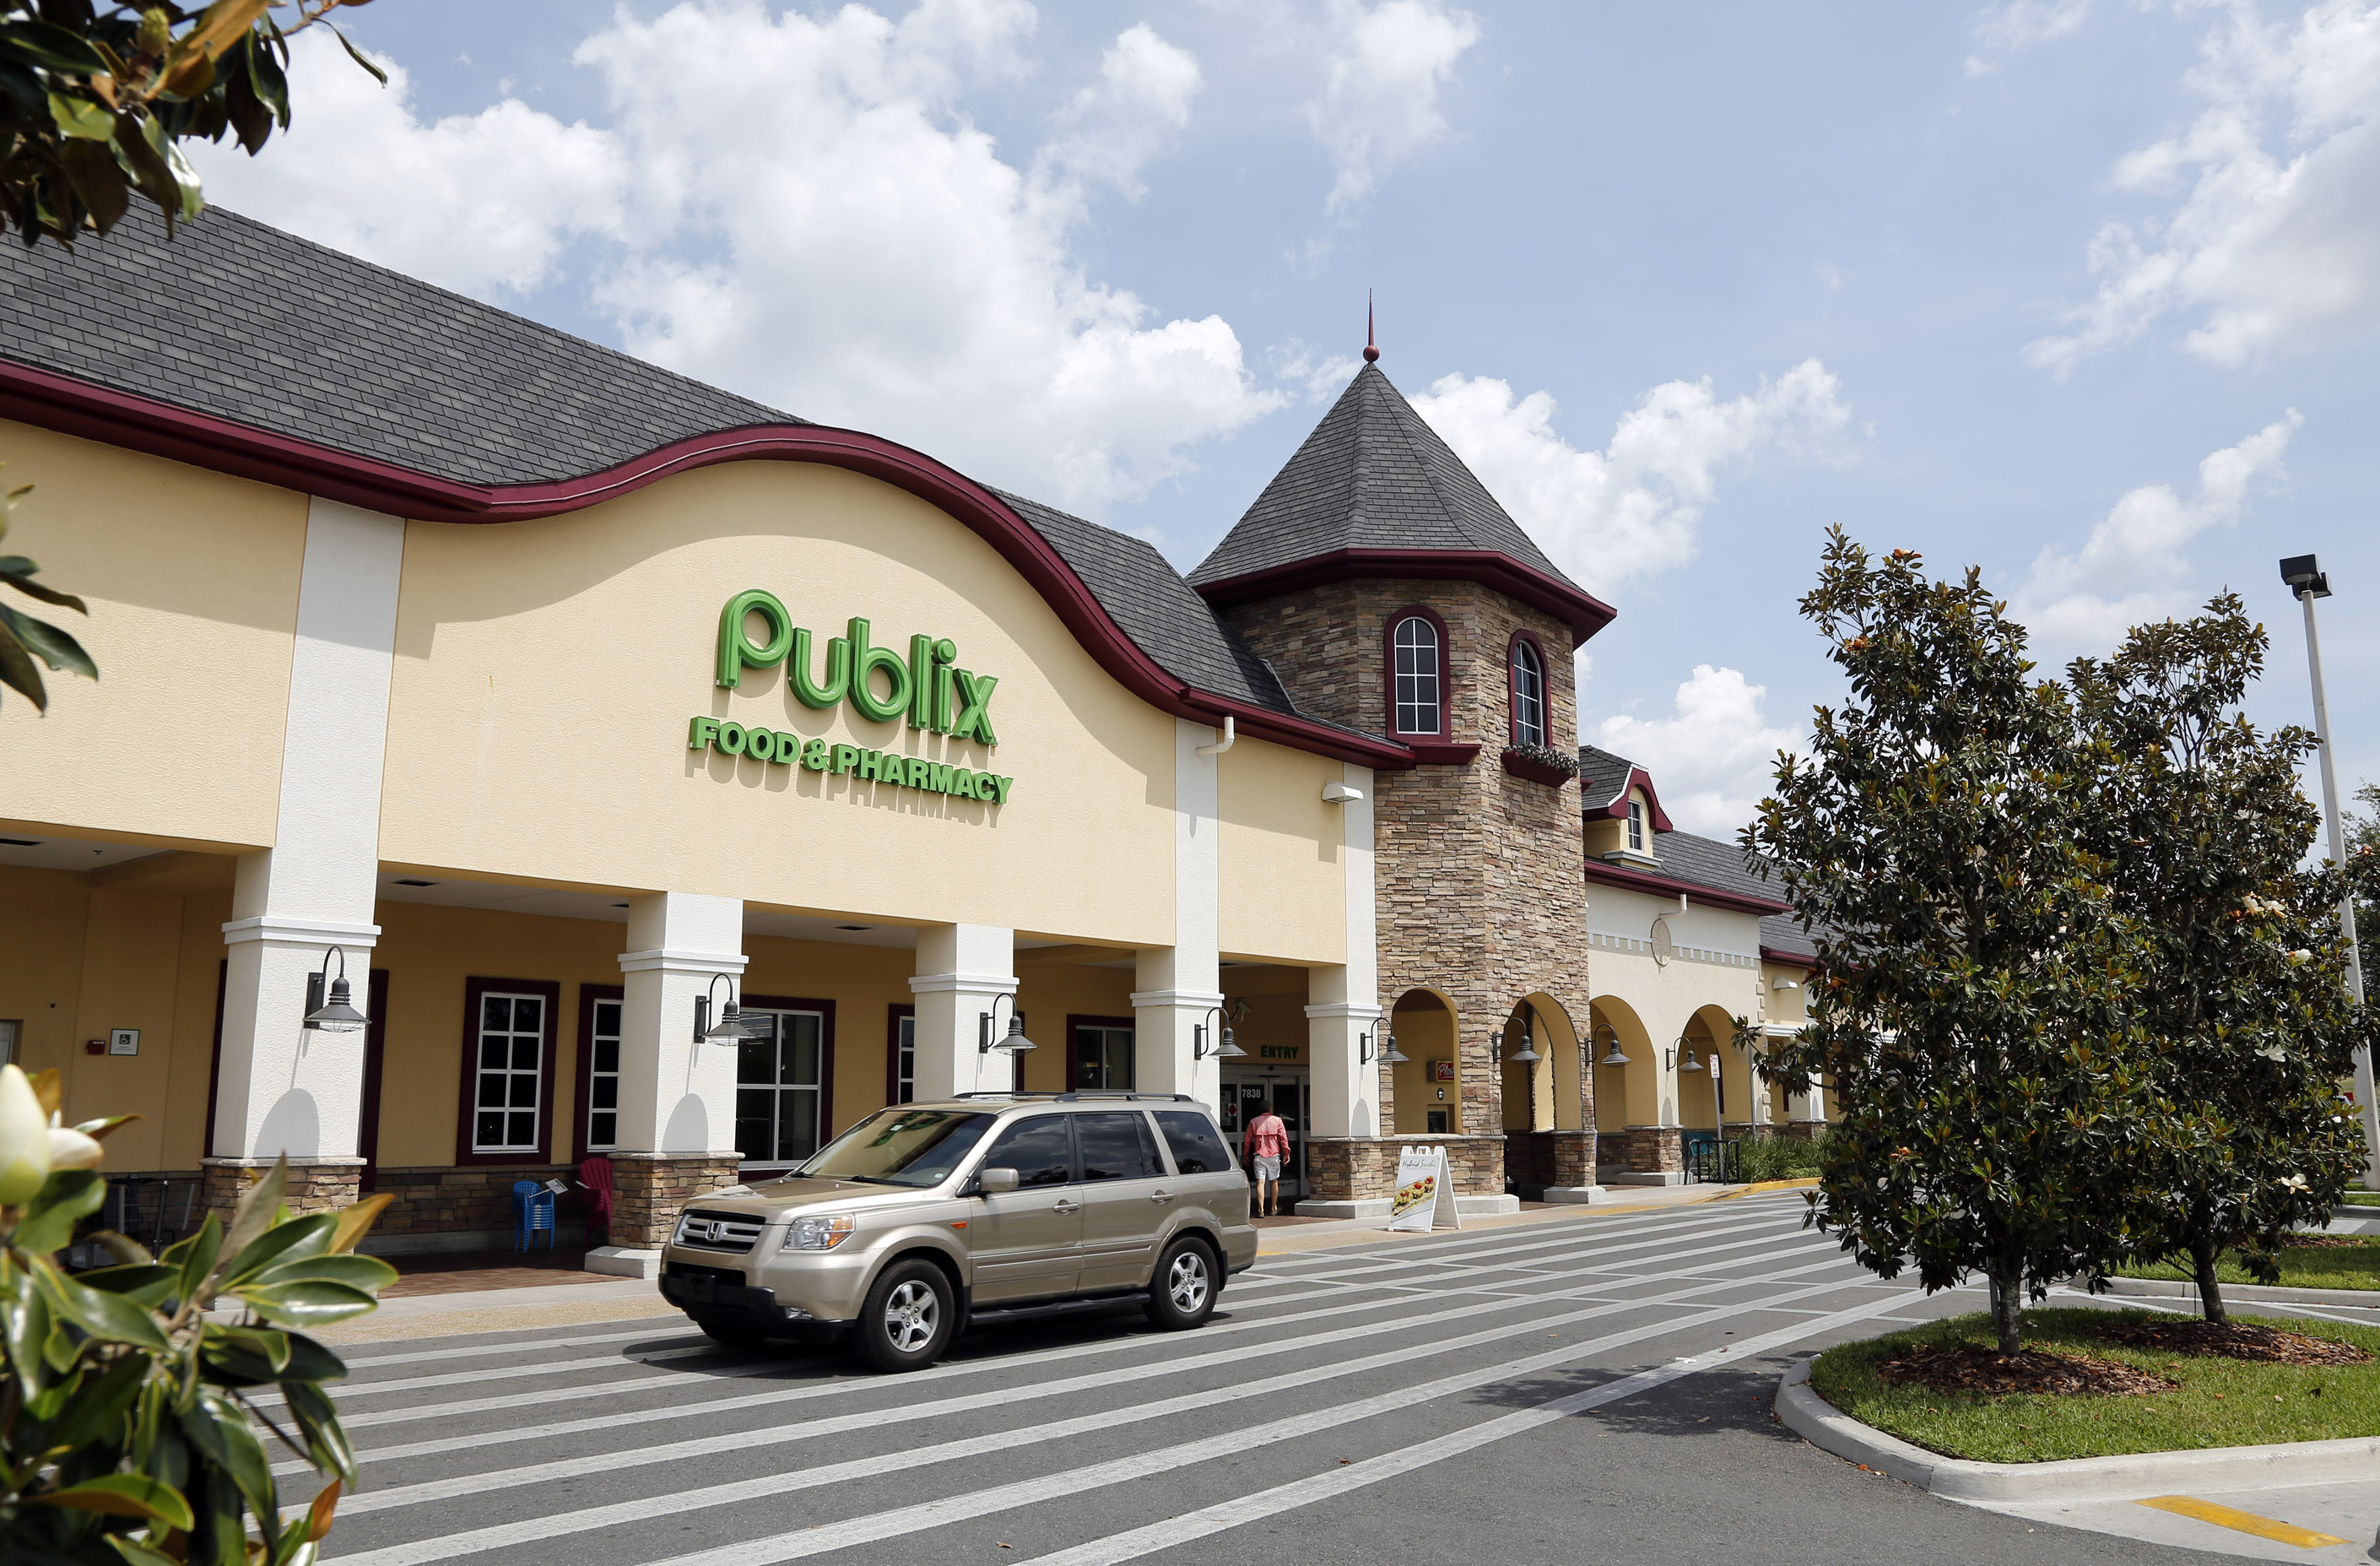 Publix asks customers not to openly carry guns